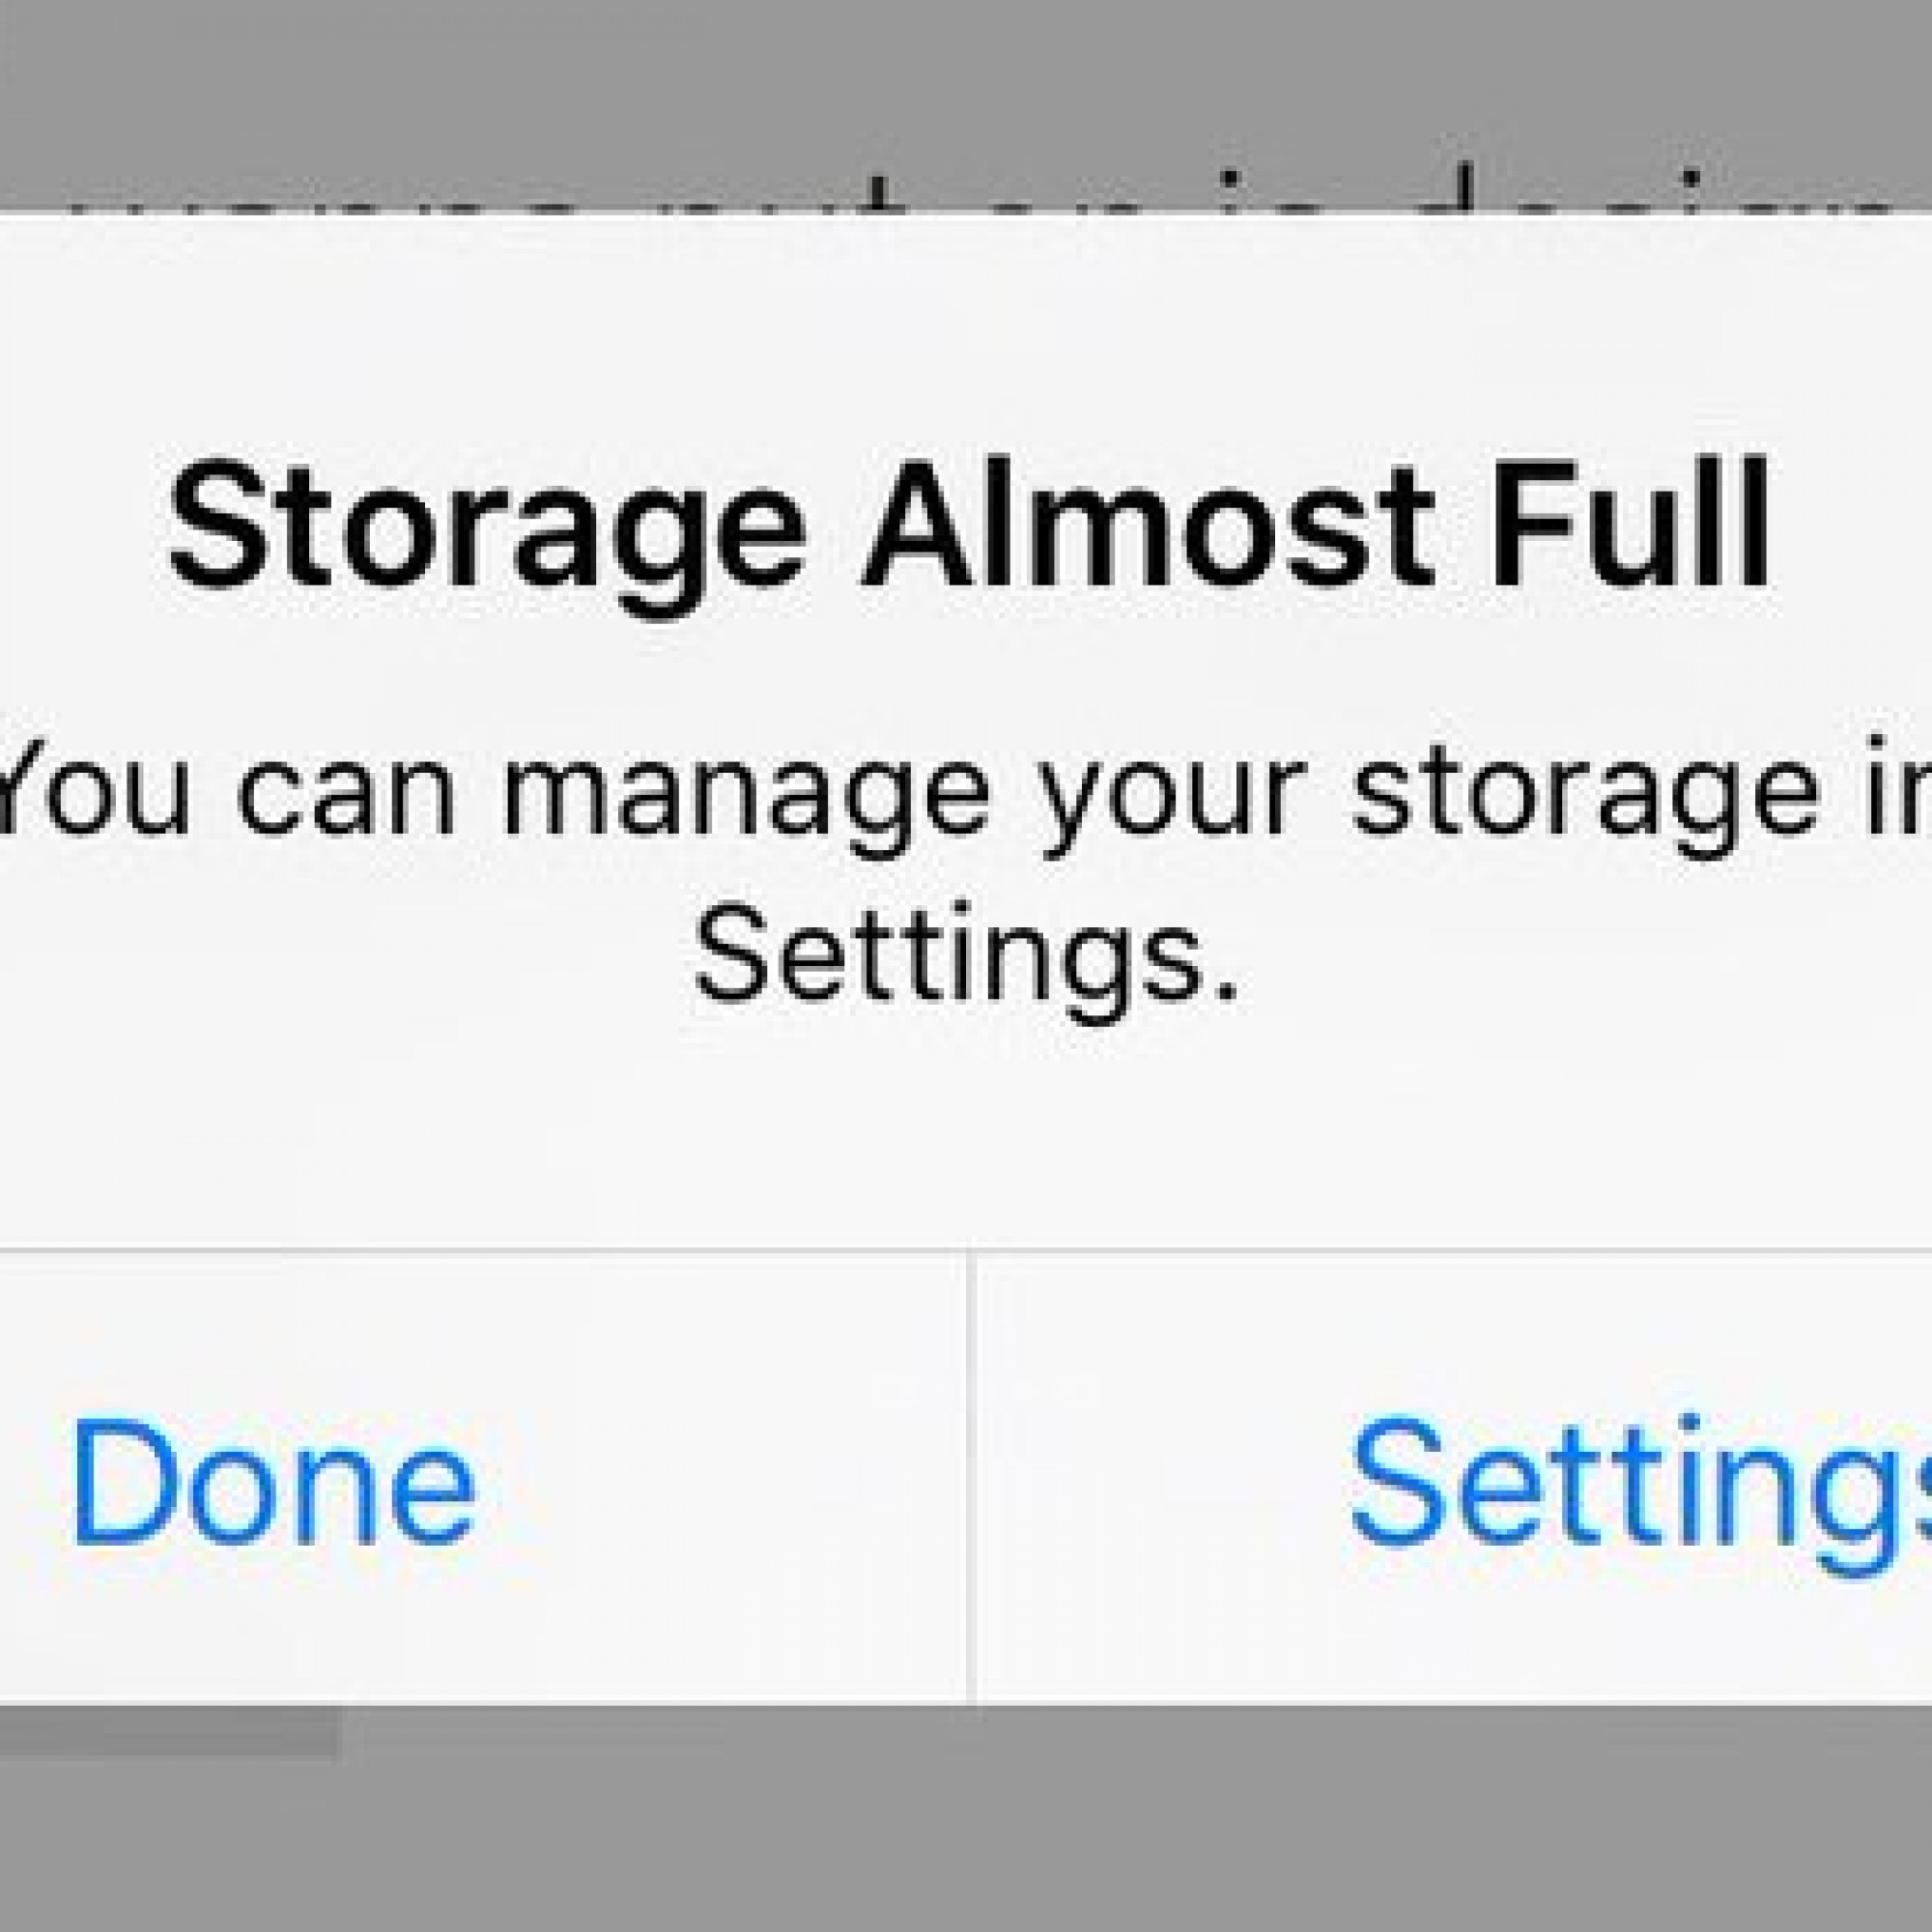 This pop-up is the single worst thing about owning an iPhone